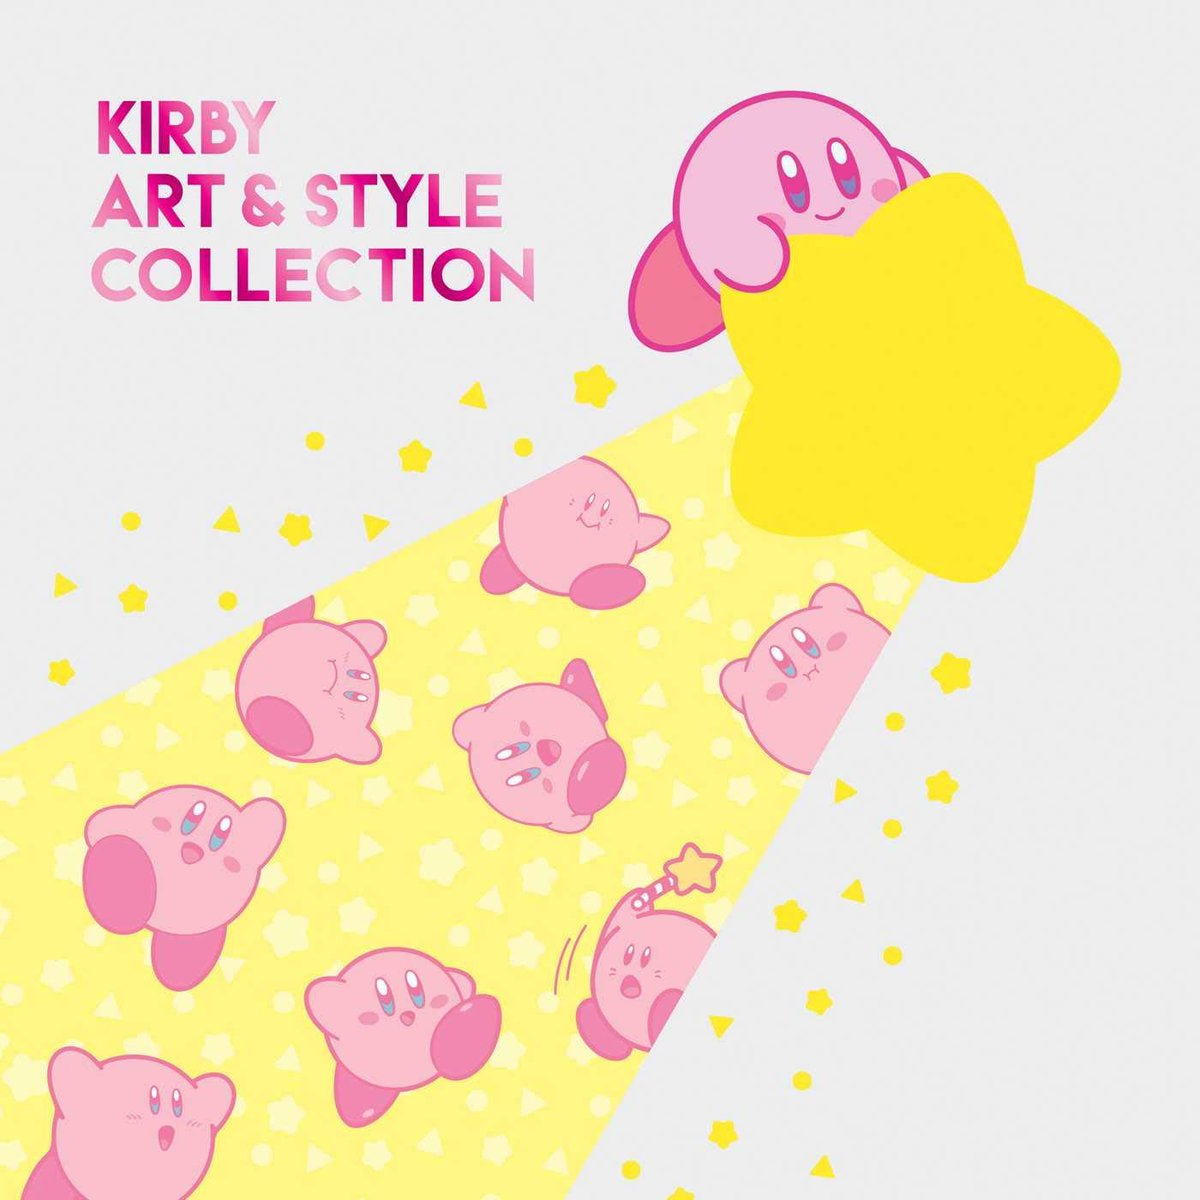 Kirby: Art & Style Collection (Hardcover) is 40% off on Amazon: 2 $17.87